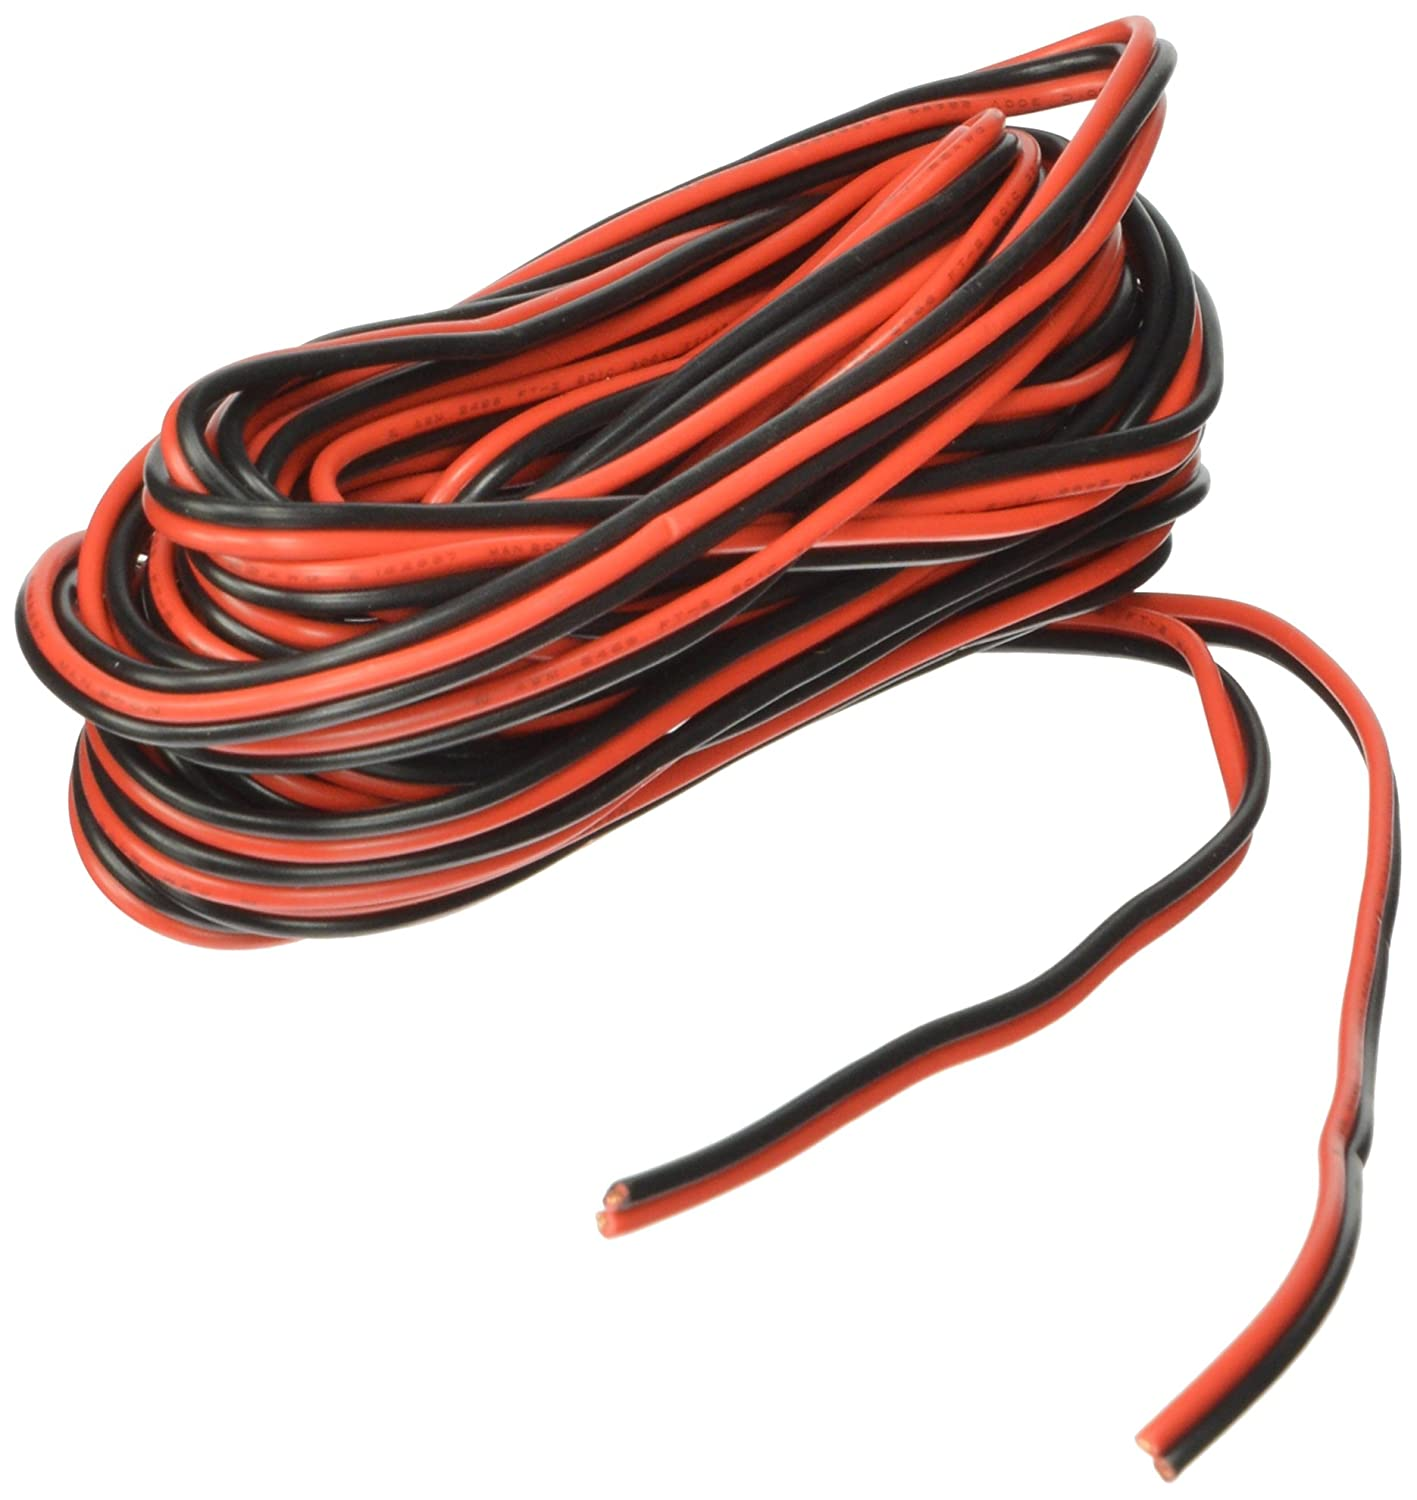 amazon com roadpro 25' hardwire replacement 2 wire 22 gauge dc wiring colors  amazon com